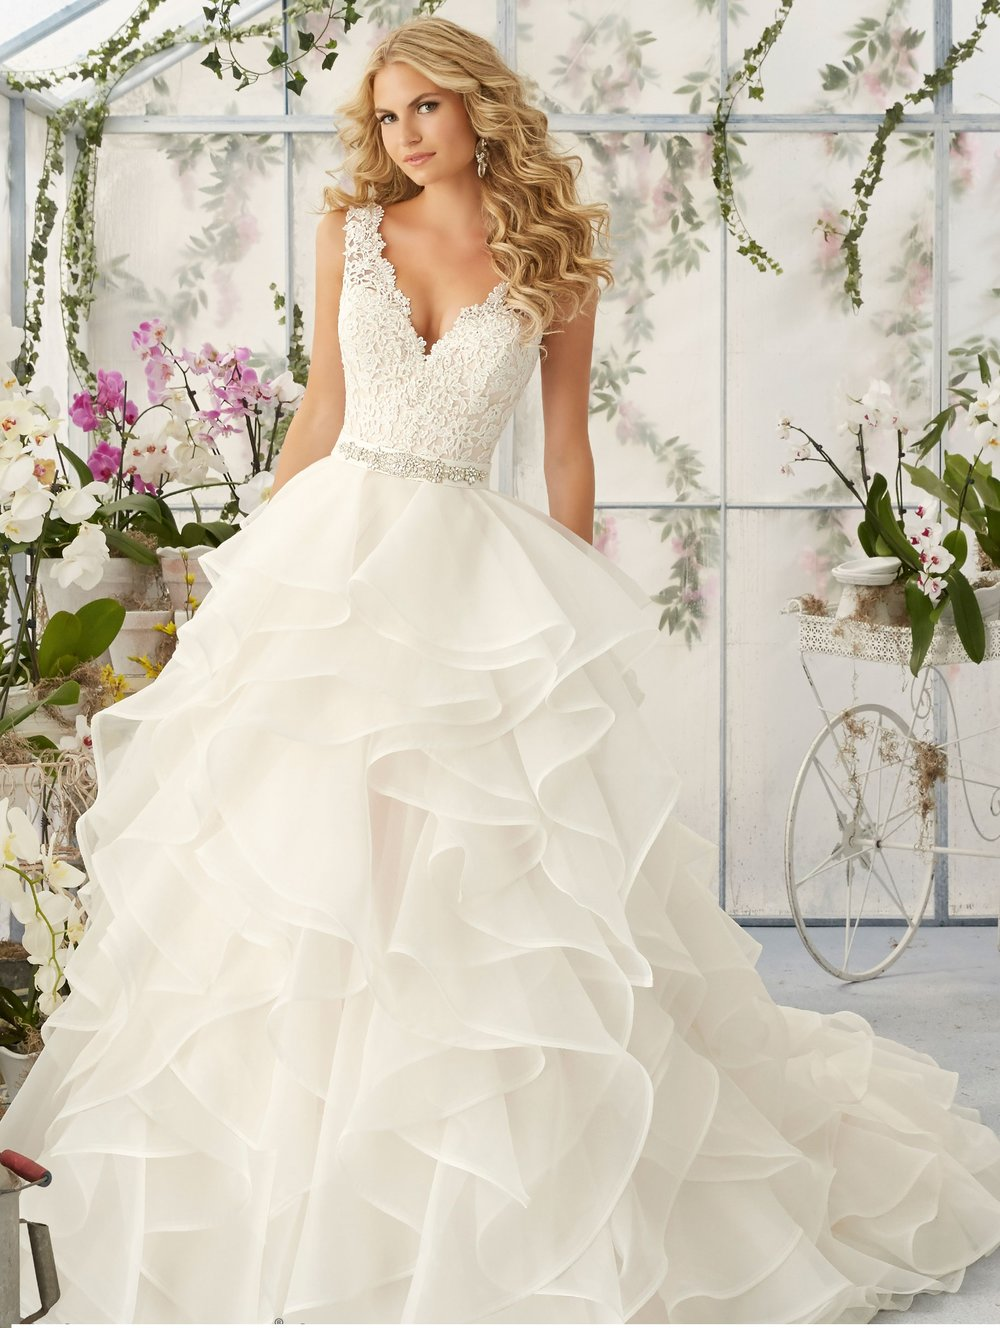 V-neck A-line organza wedding dress with straps